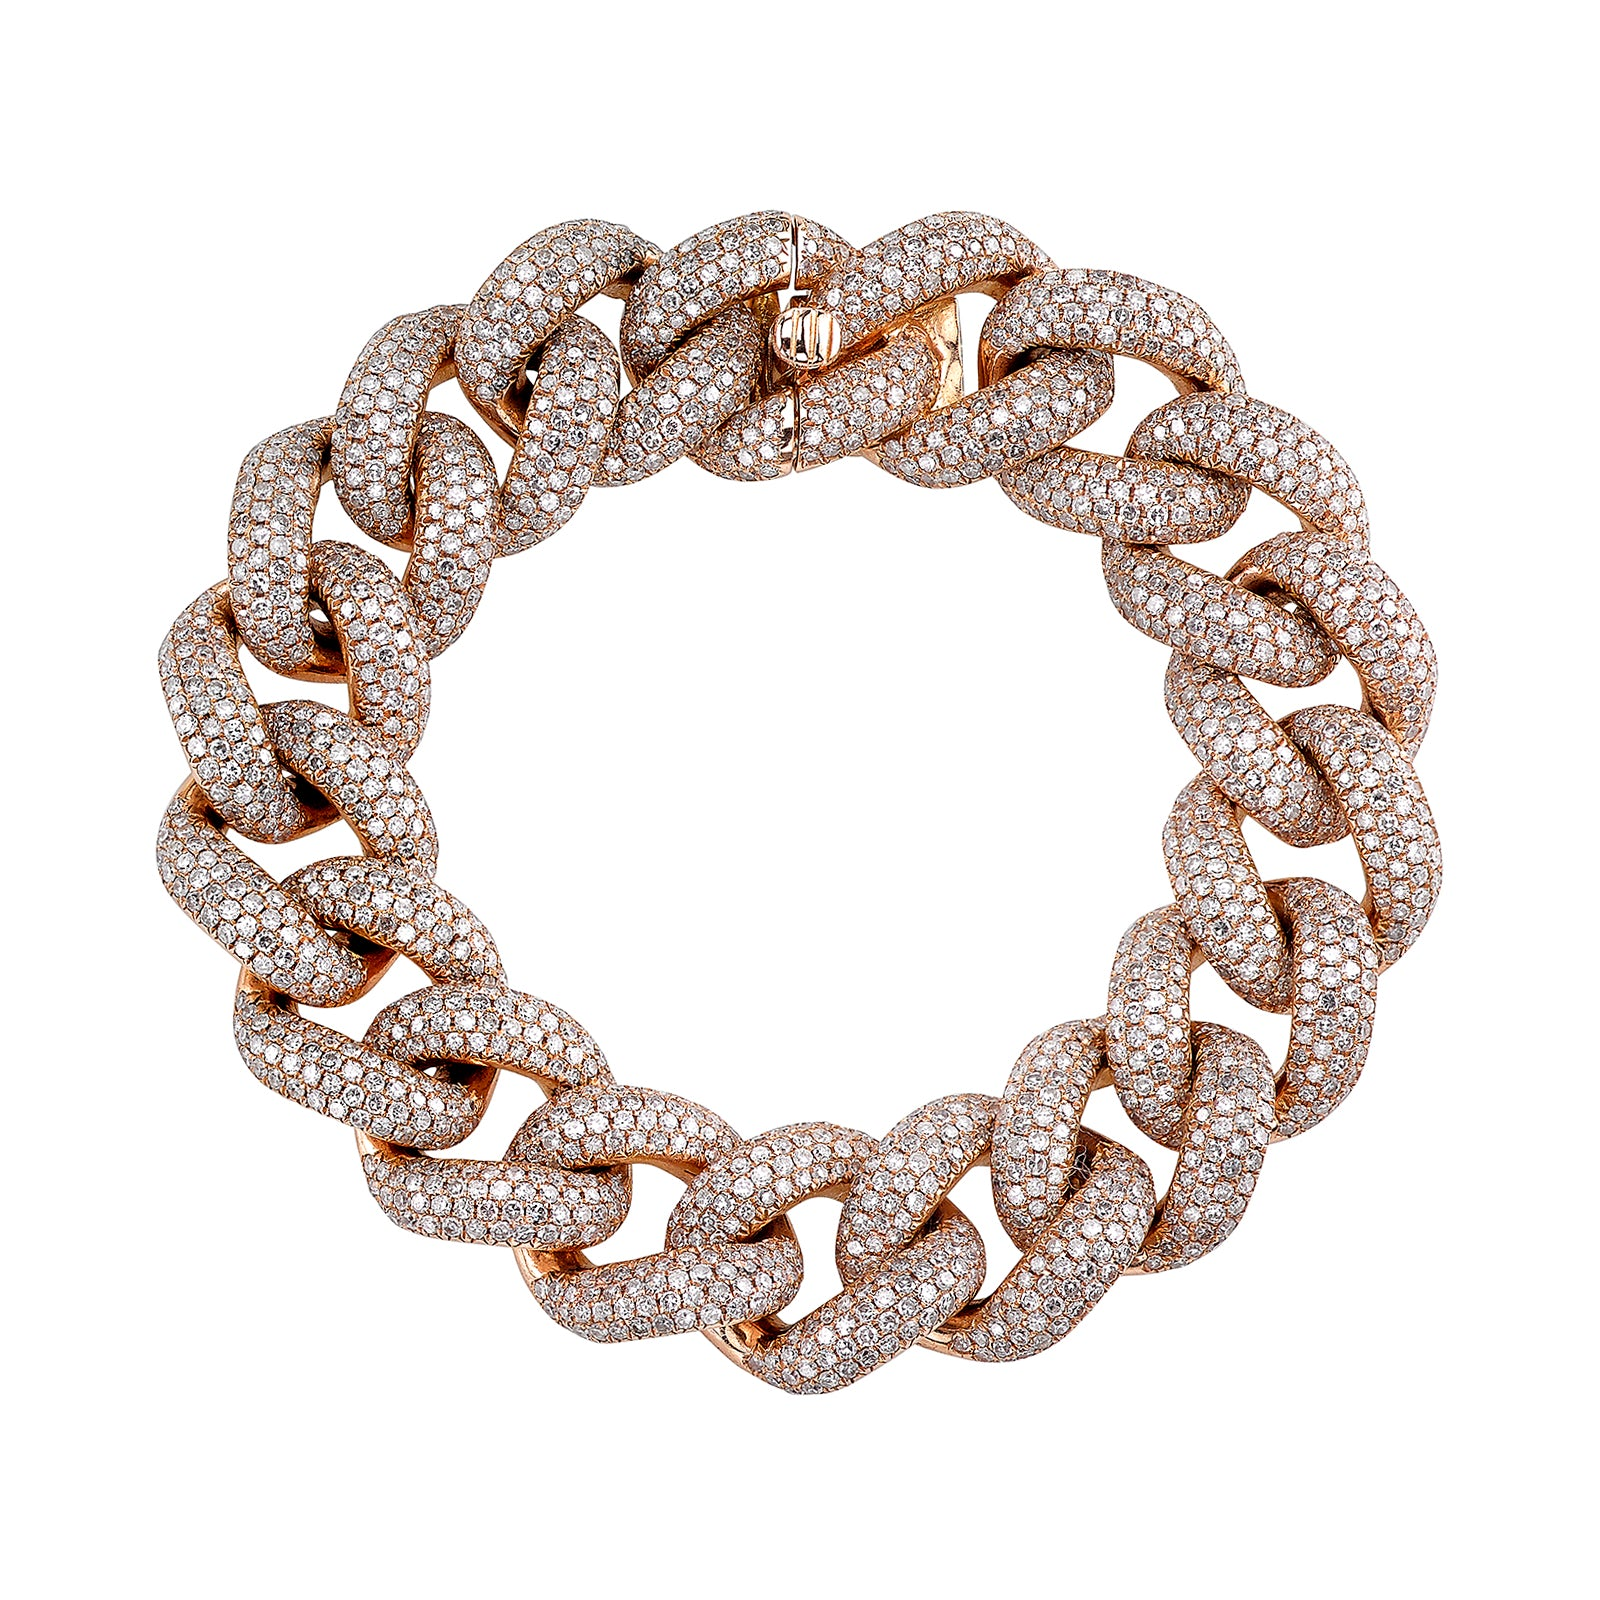 Shay Jumbo Diamond Link Bracelet - Rose Gold - Bracelets - Broken English Jewelry